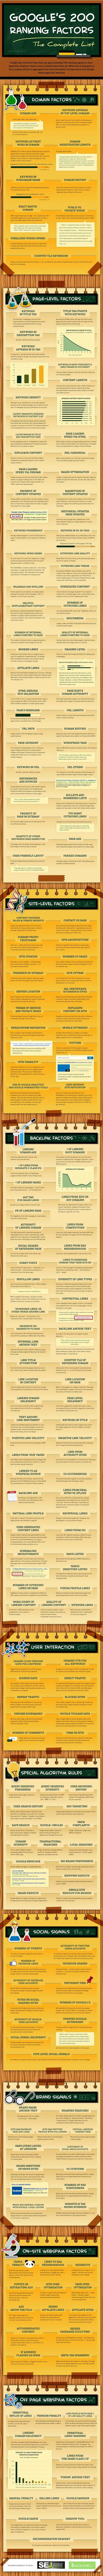 Google's 200 Ranking Factors, the complete list an infographic /@BerriePelser | WordPress Google SEO and Social Media | Scoop.it